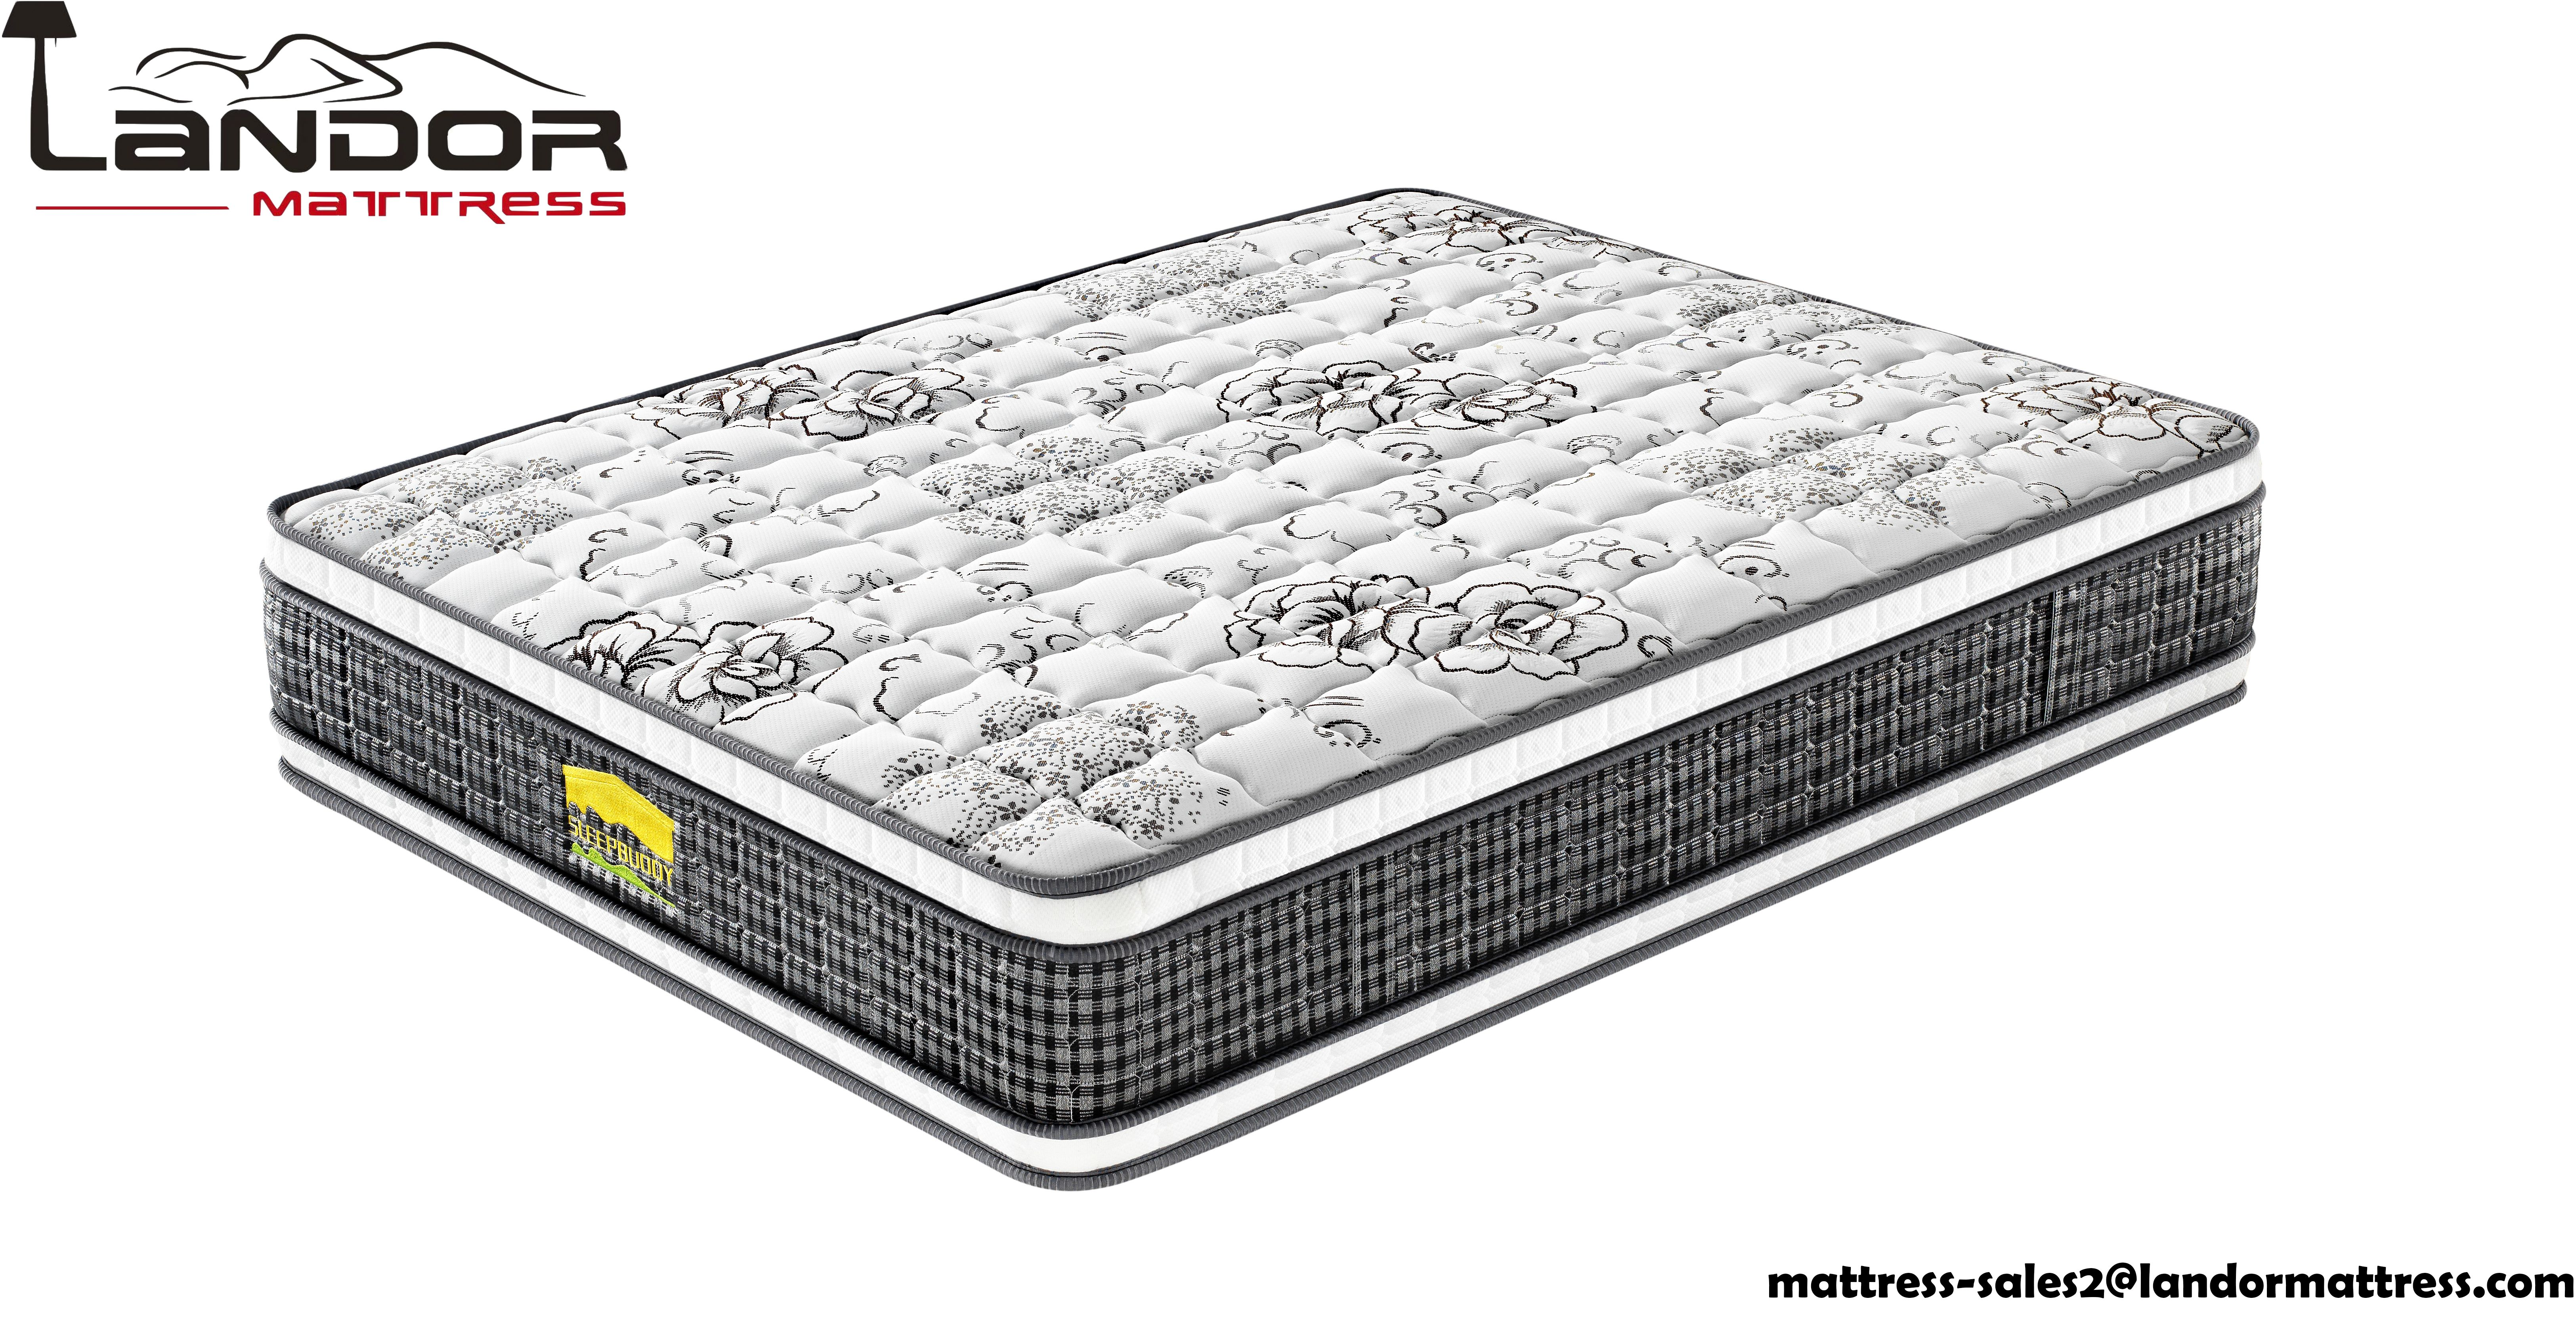 Luxury Mattress Double Pocket Spring Unit No Mattress What You Use Mattress Bed Furniture